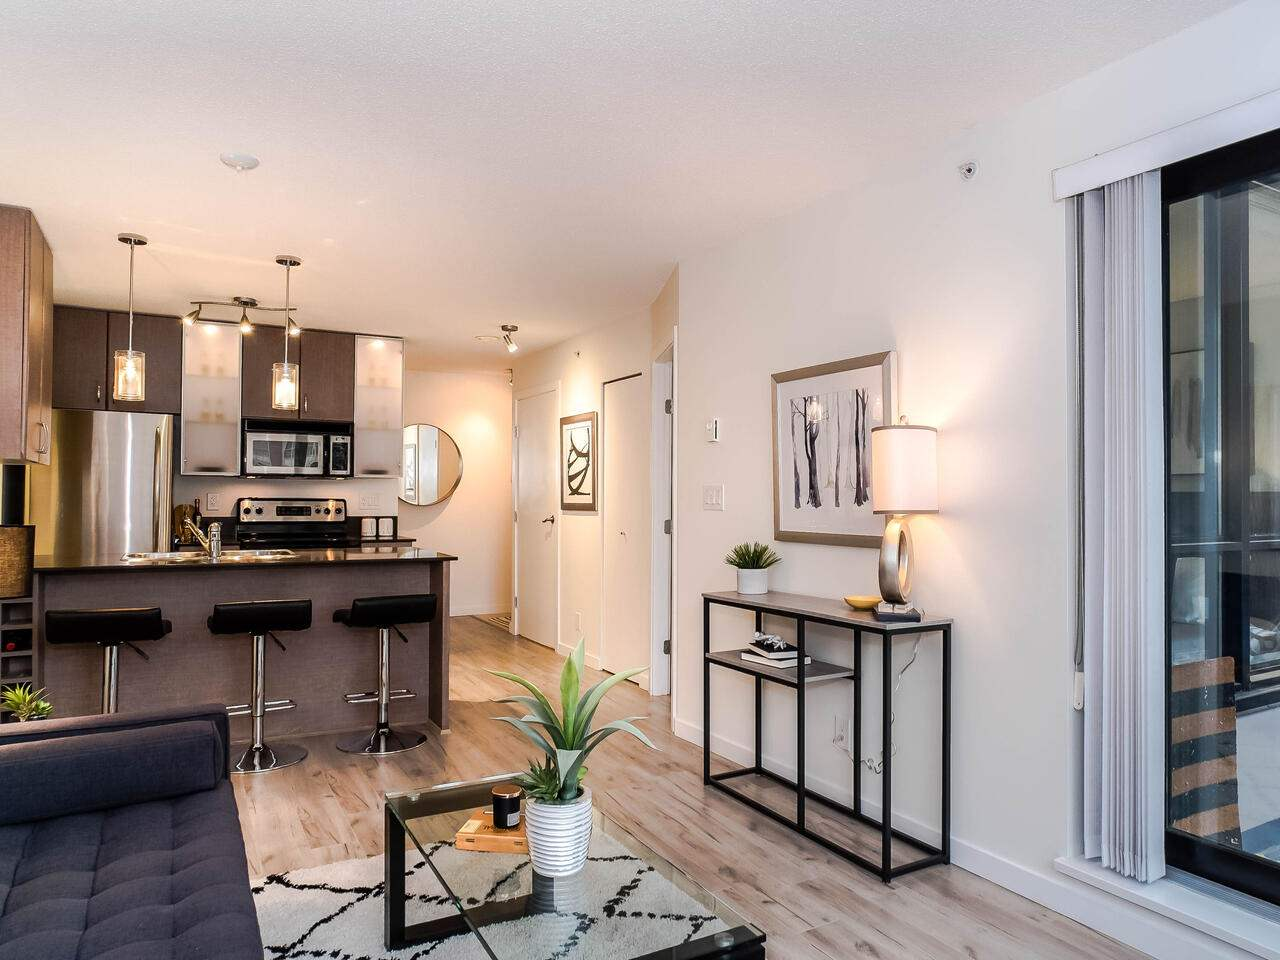 1810 909 MAINLAND STREET - Yaletown Apartment/Condo for sale, 1 Bedroom (R2518845) - #2